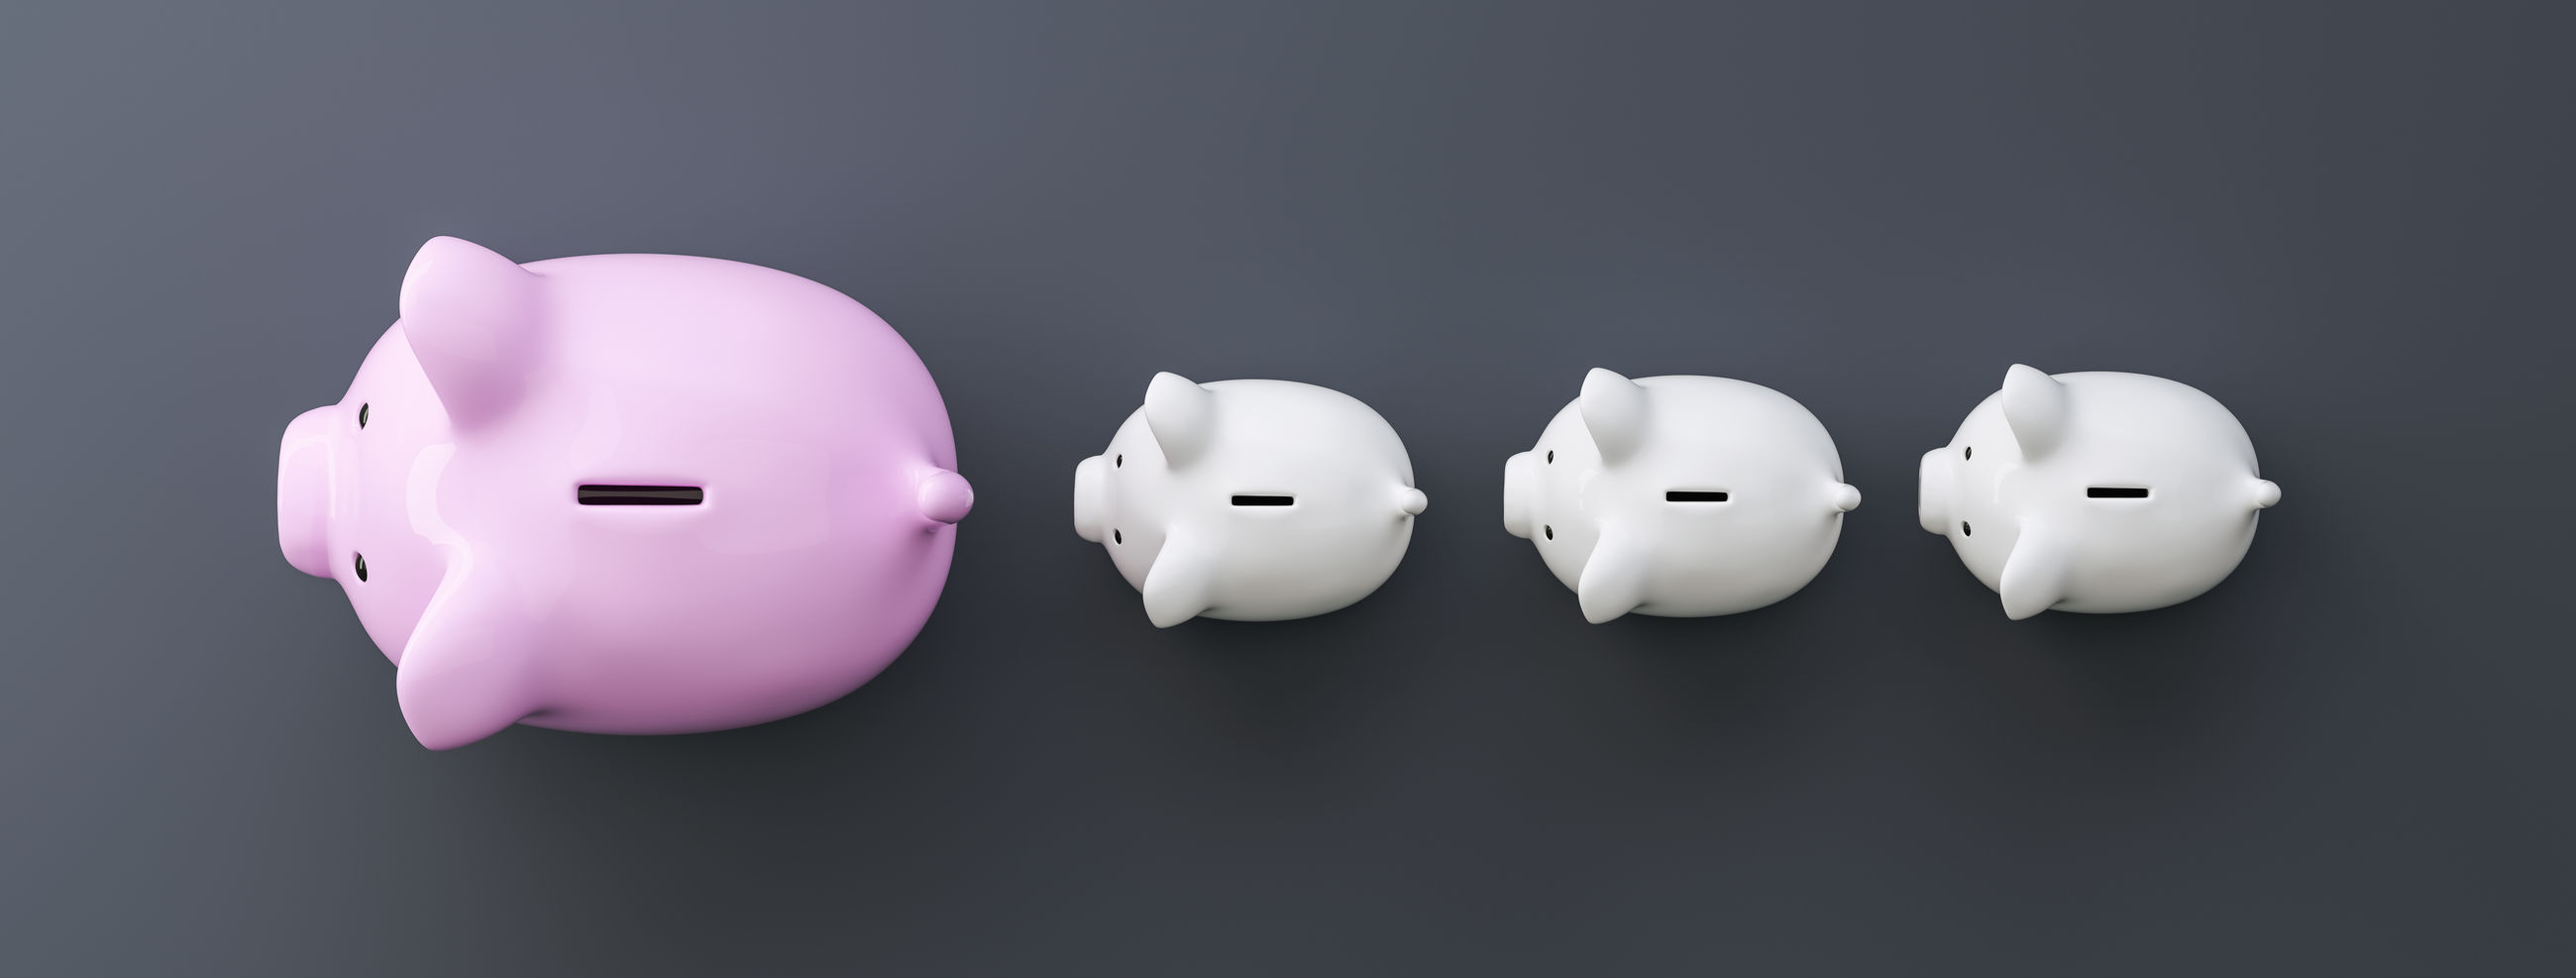 Directly above shot of piggy banks against gray background